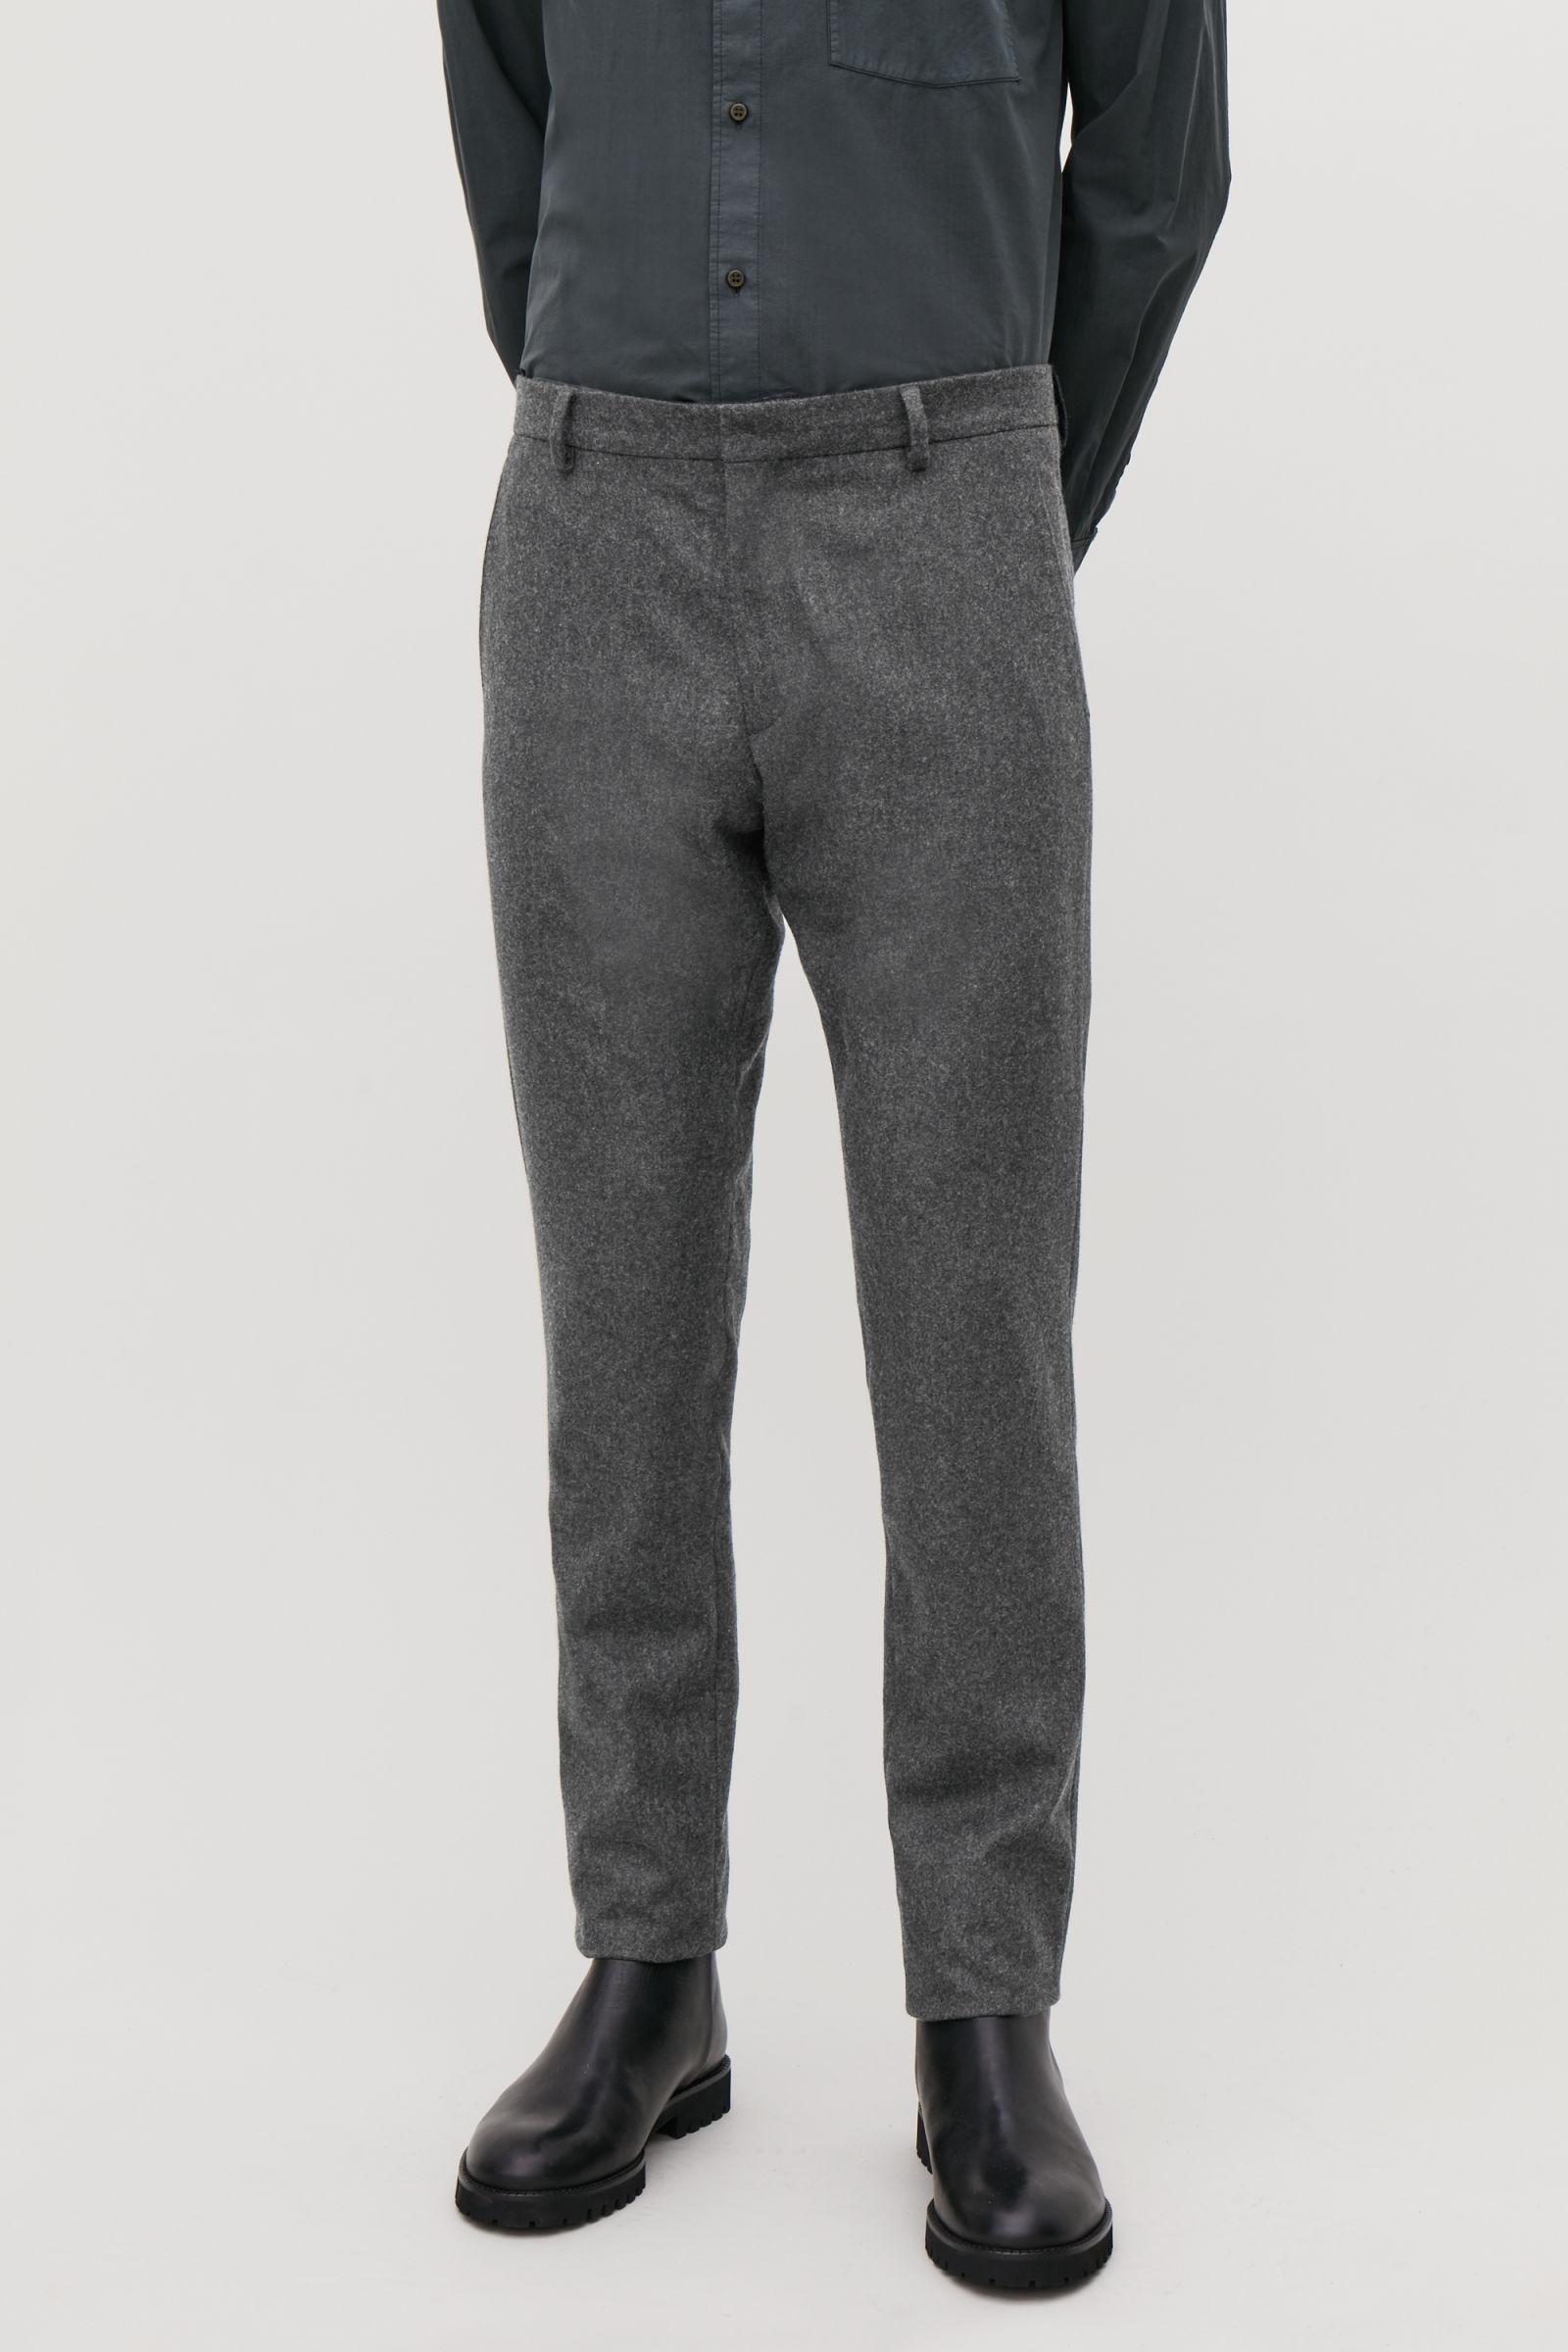 COS Slim Wool Trouser Men's Winter Fashion